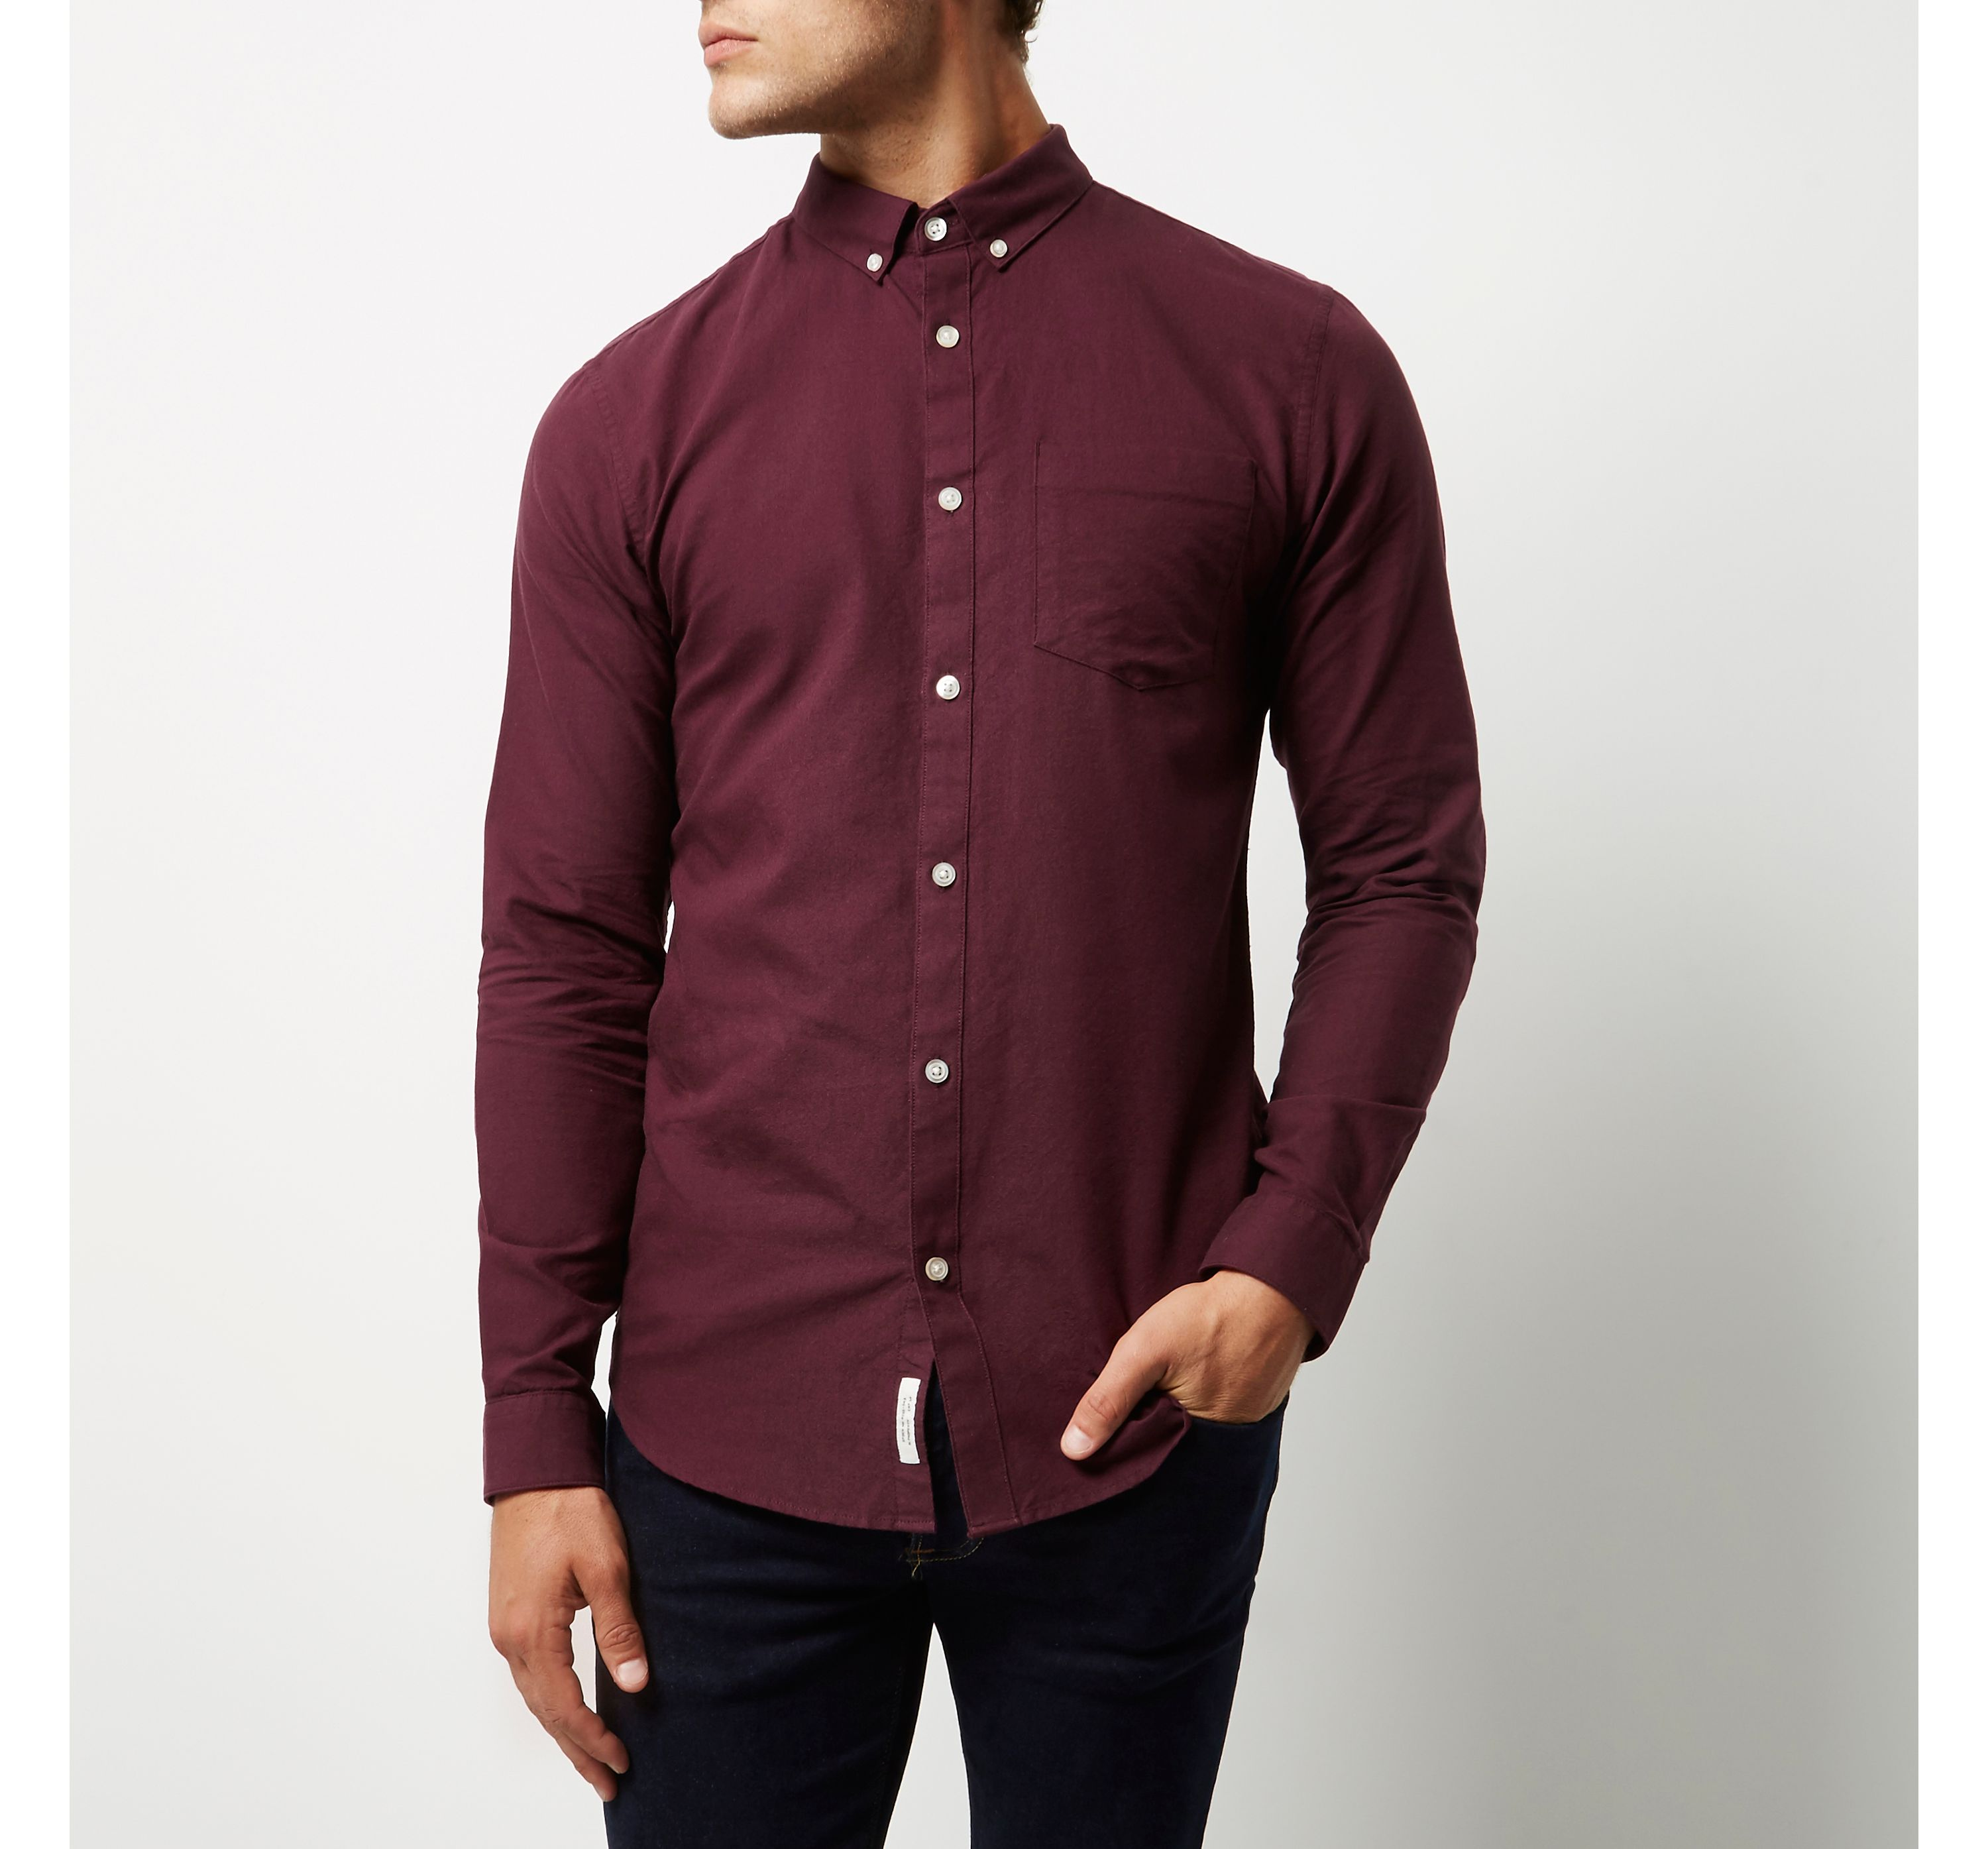 Red River Island Mens Berry casual slim fit Oxford shirt